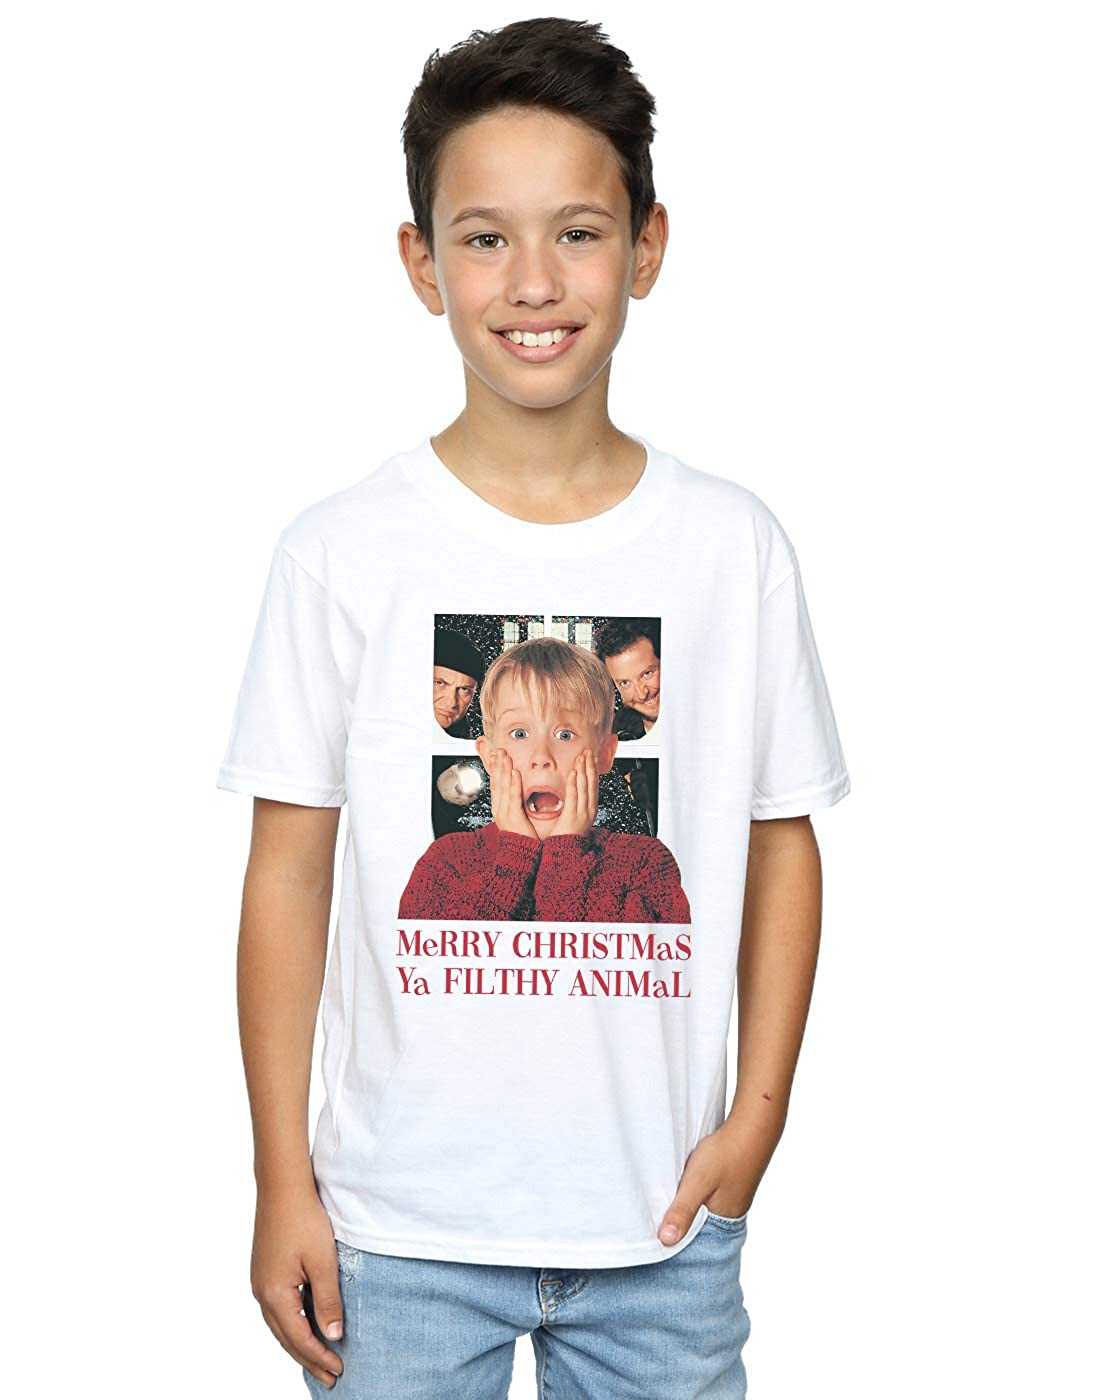 Home Alone Boys Merry Christmas Ya Filthy Animal T-Shirt Absolute Cult